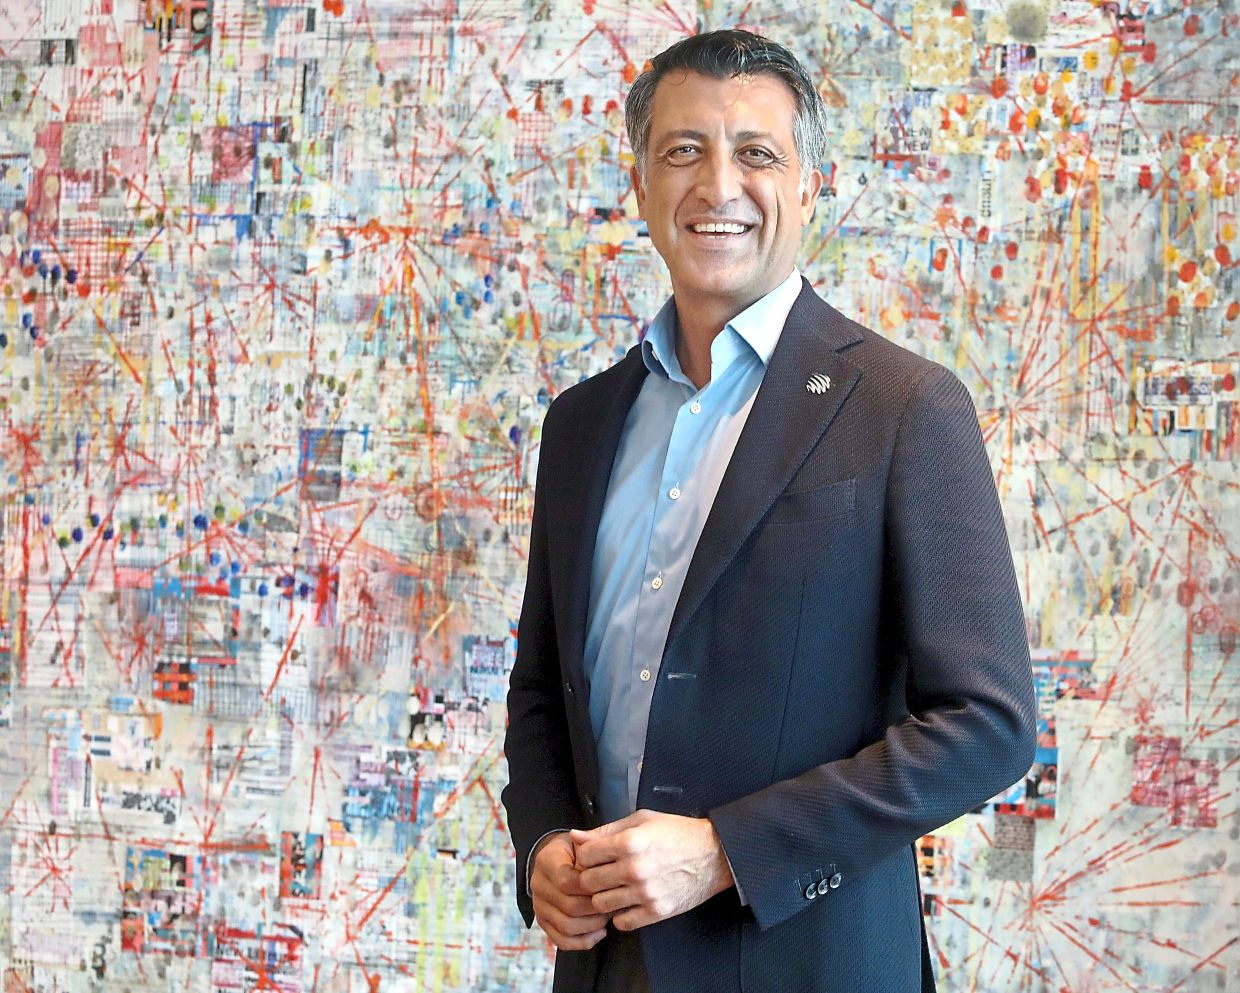 Maxis CEO Gokhan Ogut said that digital inclusion is important and that everyone should benefit from it.